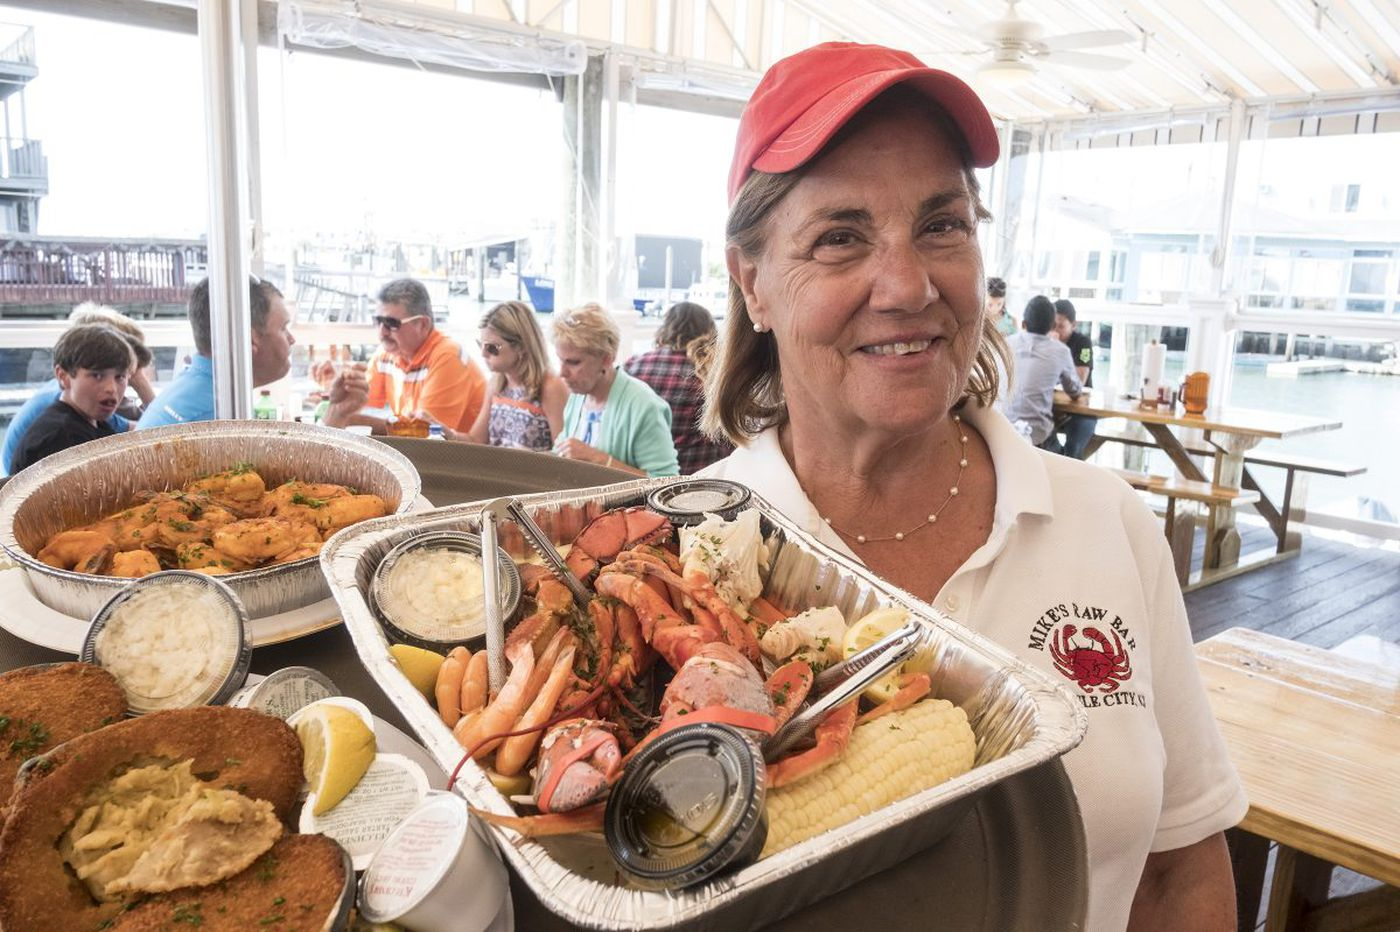 Craig LaBan reviews this summer's offerings at the Jersey Shore